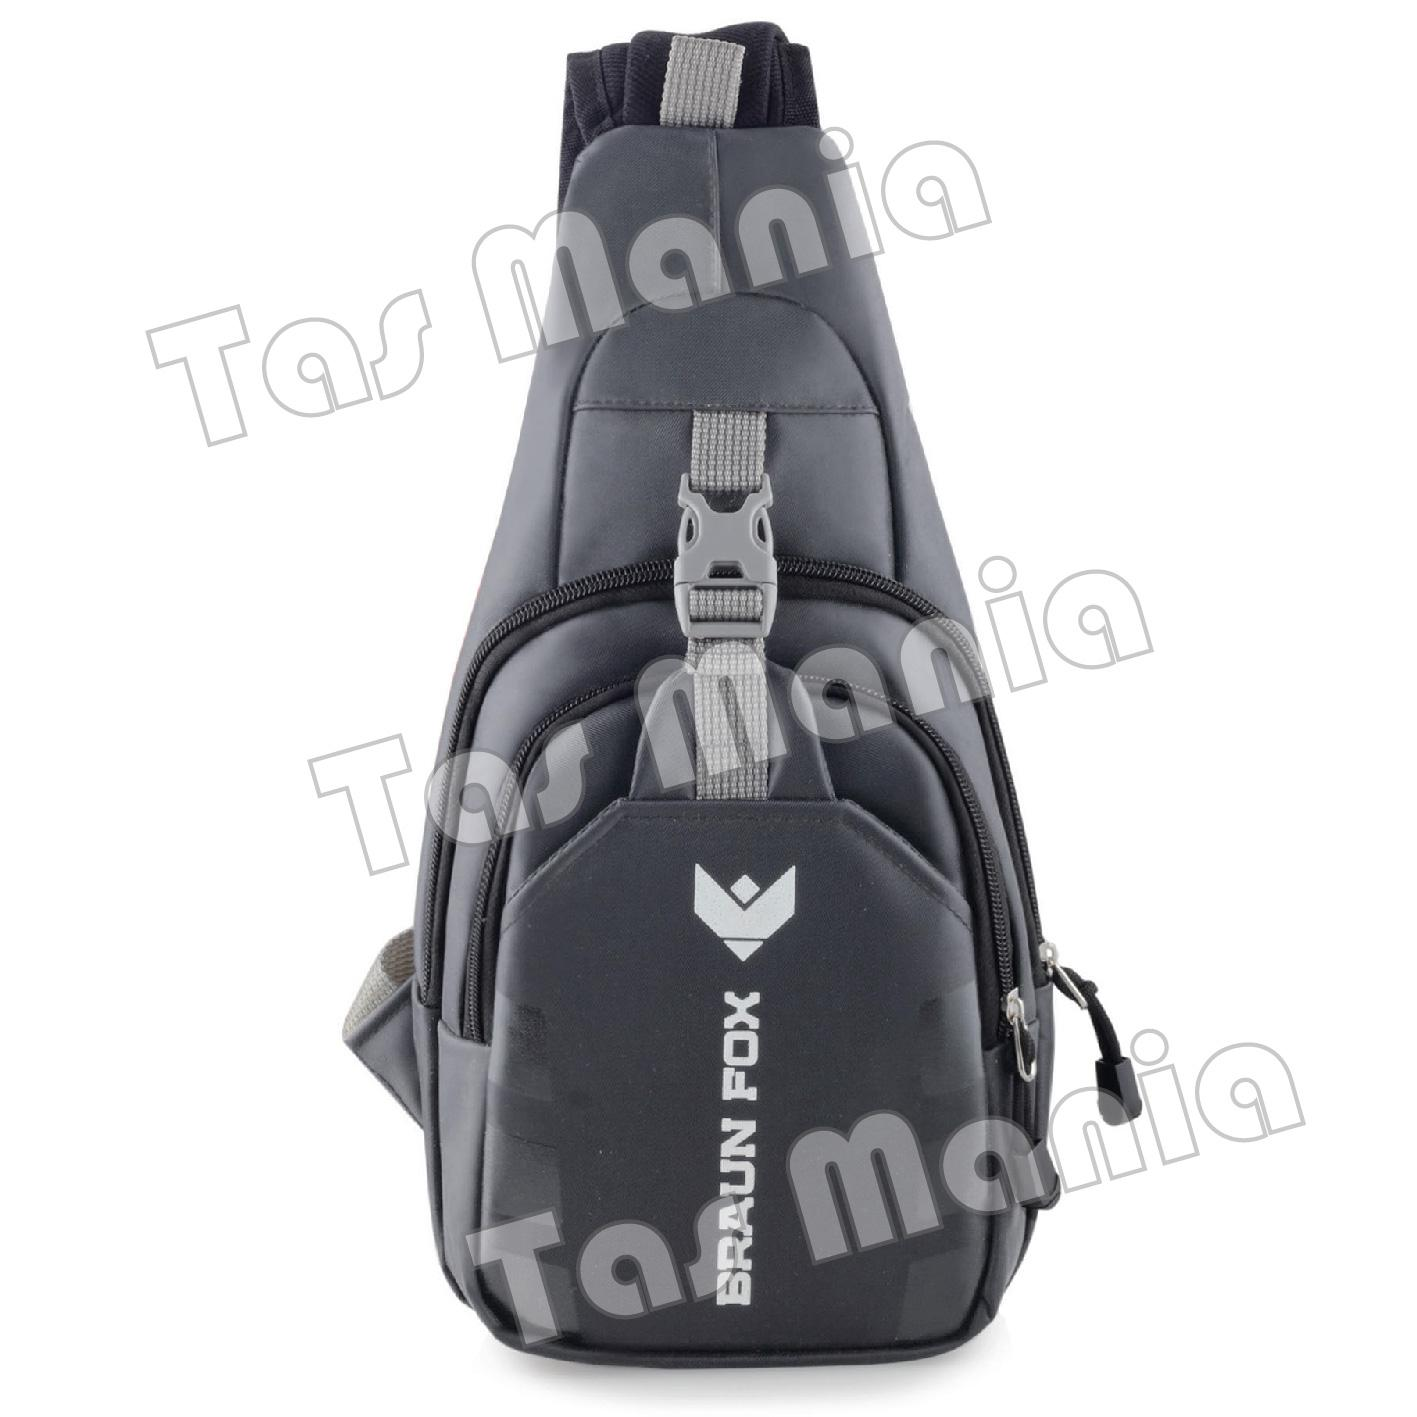 Harga Readystokrr8 Dry Bag Eiger 10 L Art 910003444 Waterproof Tas Consina Backpack Harbour Selempang Pria Braun Fox Bobo Outdoor Sling Pinggang Messenger